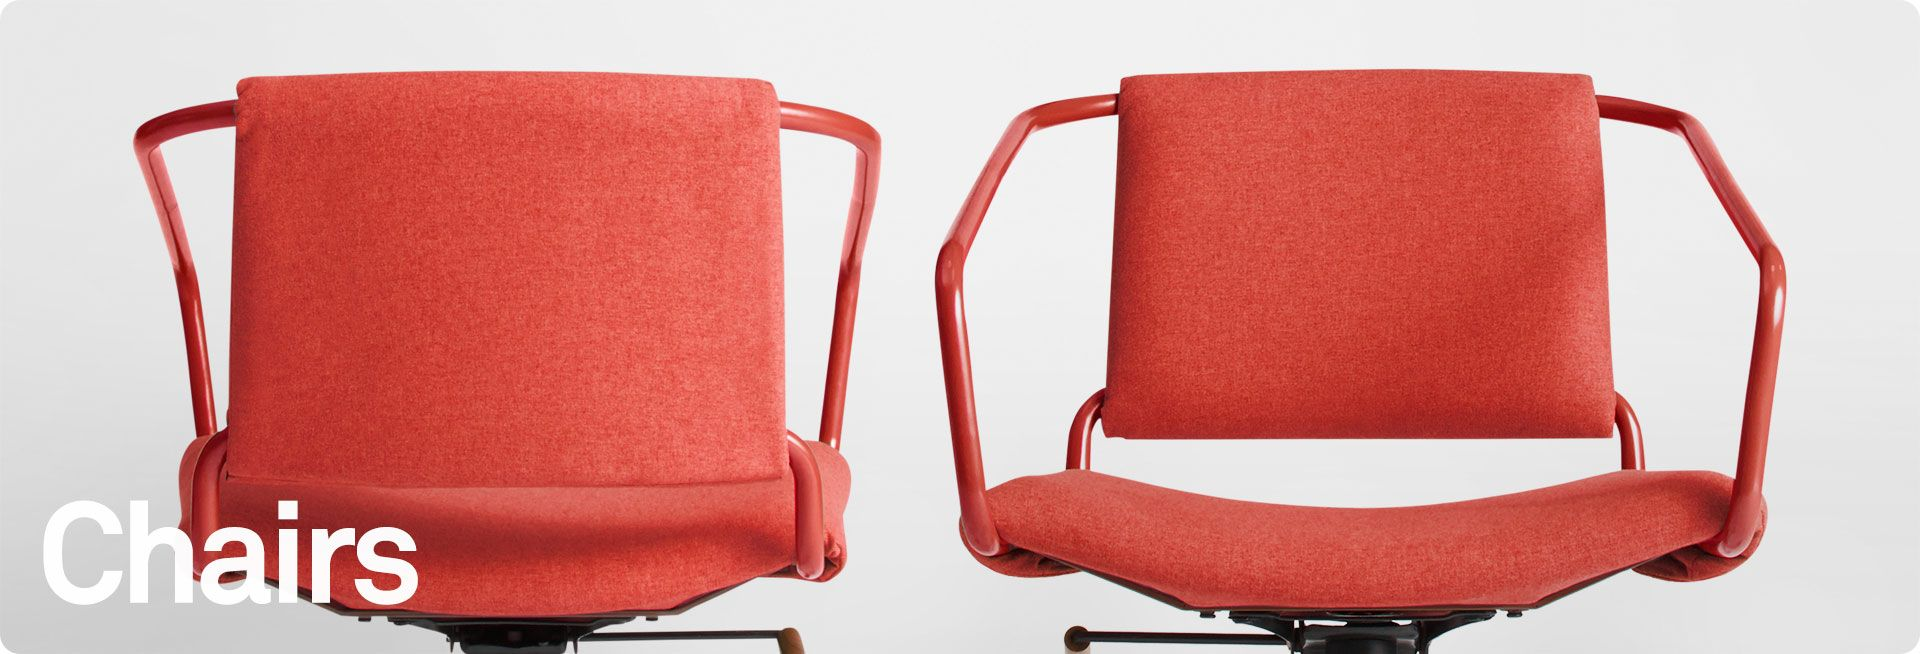 Fabulous Modern Office Chairs And Task Chairs By Blu Dot S Chair Ncnpc Chair Design For Home Ncnpcorg